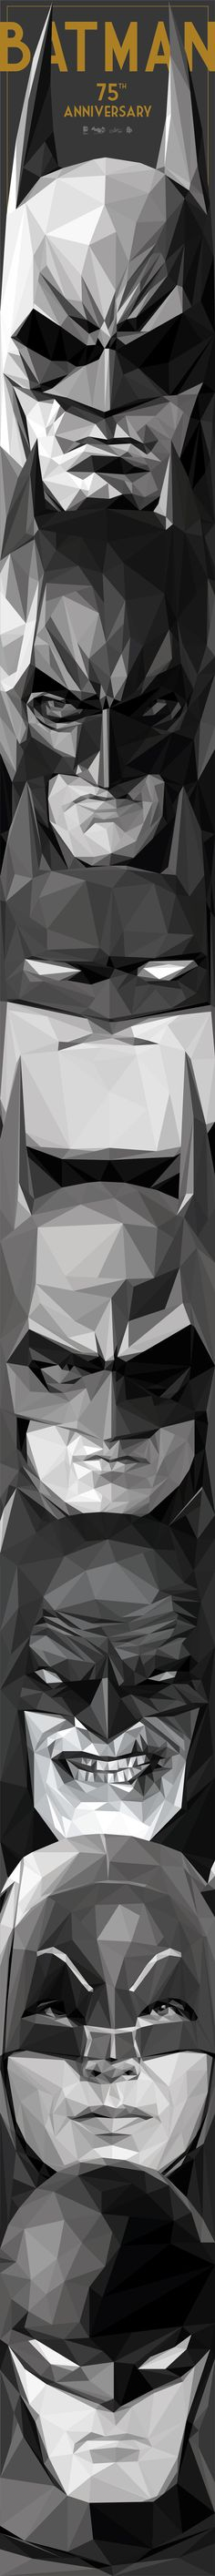 Batman 75th Anniversary - Totem Character Design, Digital Art, Illustration  inShare Simon Delart's Portfolio Paris, France  View All Projec...